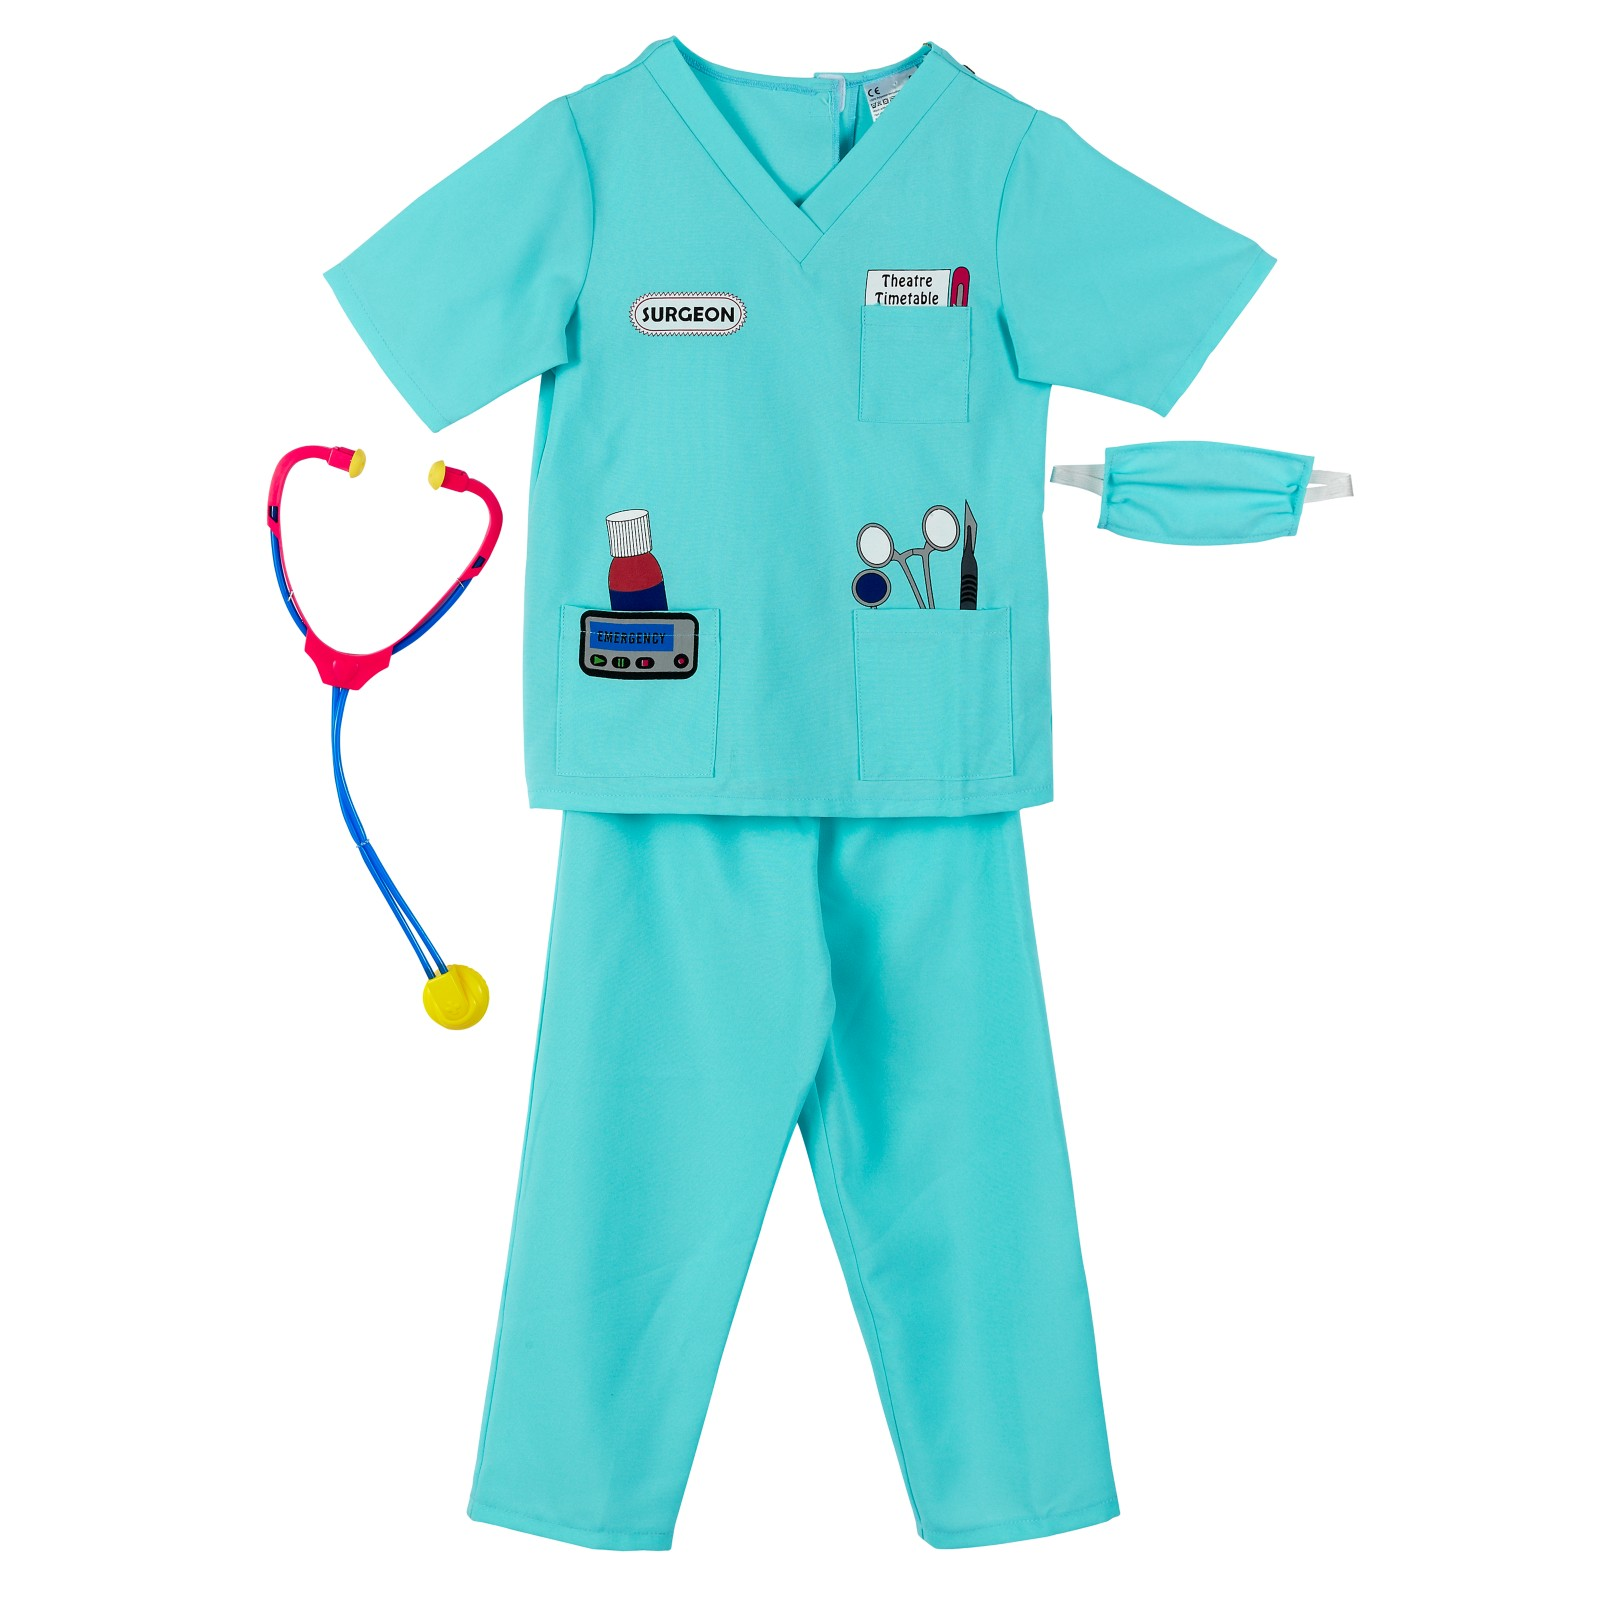 Doctors clipart clothing, Doctors clothing Transparent FREE.